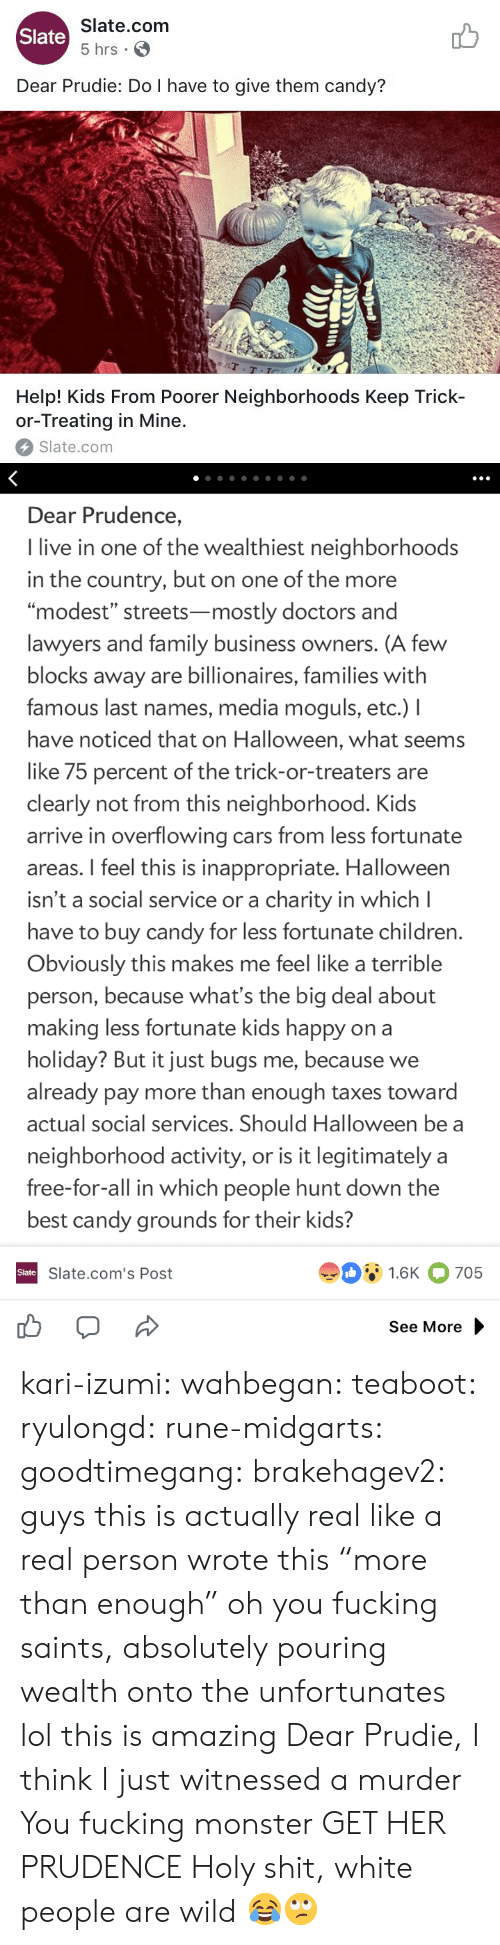 """White People Are: Slate.com  5 hrs .  Slate  Dear Prudie: Do I have to give them candy?  aT  T-T  Help! Kids From Poorer Neighborhoods Keep Trick-  or-Treating in Mine.  Slate.com   Dear Prudence,  I live in one of the wealthiest neighborhoods  in the country, but on one of the more  """"modest"""" streets-mostly doctors and  lawyers and family business owners. (A few  blocks away are billionaires, families with  famous last names, media moguls, etc.) I  have noticed that on Halloween, what seems  like 75 percent of the trick-or-treaters are  clearly not from this neighborhood. Kids  arrive in overflowing cars from less fortunate  areas. I feel this is inappropriate. Halloween  isn't a social service or a charity in which l  have to buy candy for less fortunate children  Obviously this makes me feel like a terrible  person, because what's the big deal about  making less fortunate kids happy on a  holiday? But it just bugs me, because we  already pay more than enough taxes toward  actual social services. Should Halloween be a  neighborhood activity, or is it legitimately a  free-for-all in which people hunt down the  best candy grounds for their kids?  91.6K 705  Slate  Slate.com's Post  See More kari-izumi: wahbegan:  teaboot:  ryulongd:  rune-midgarts:  goodtimegang:  brakehagev2:  guys this is actually real like a real person wrote this  """"more than enough"""" oh you fucking saints, absolutely pouring wealth onto the unfortunates   lol this is amazing   Dear Prudie, I think I just witnessed a murder  You fucking monster  GET HER PRUDENCE   Holy shit, white people are wild 😂🙄"""